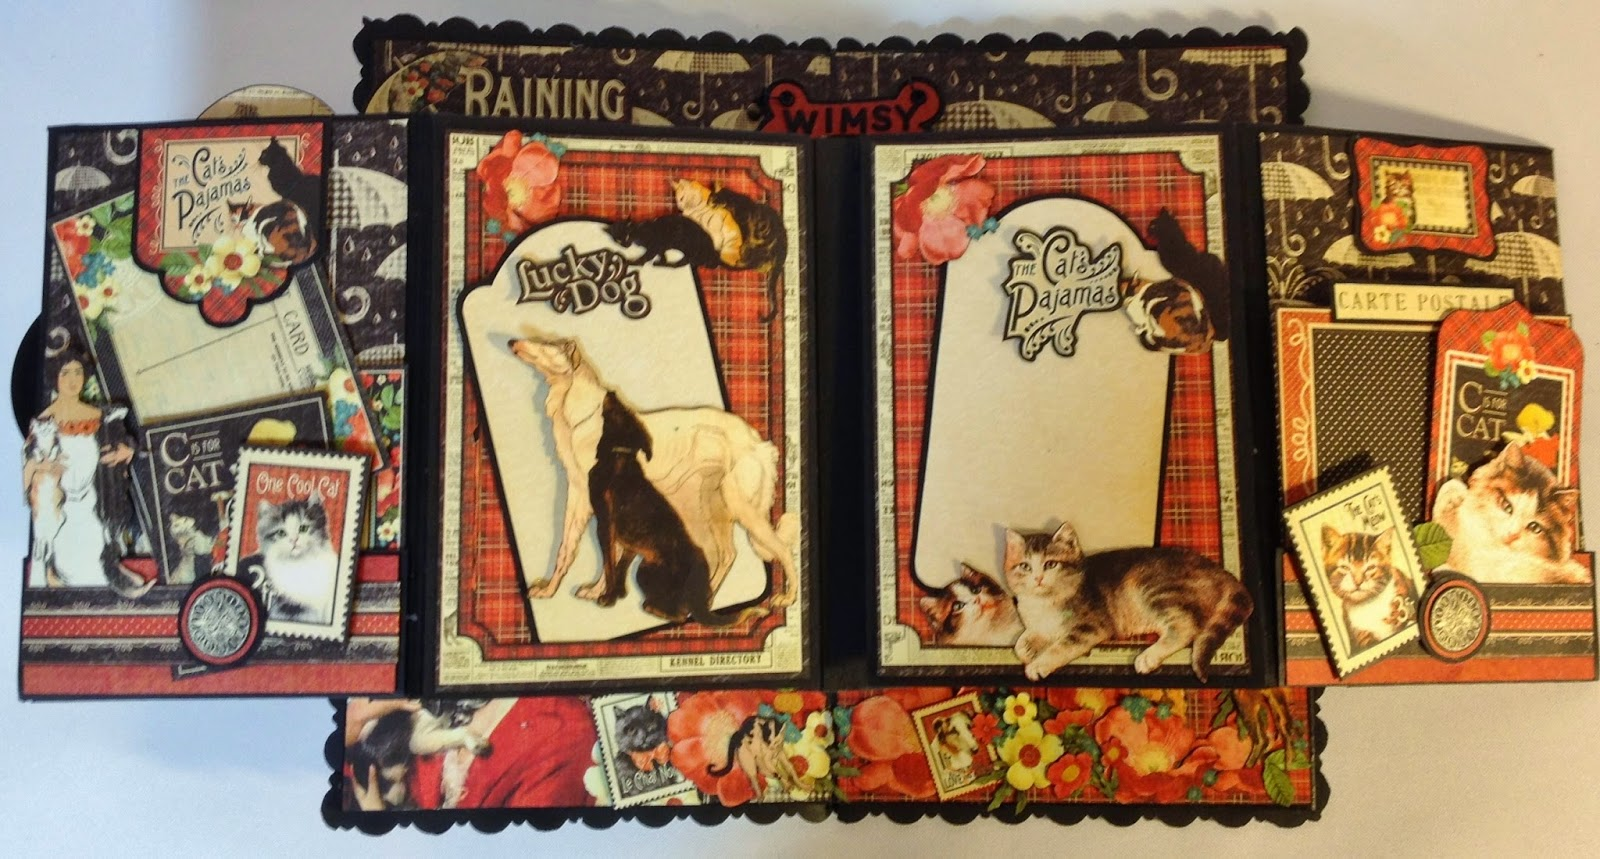 Annes Papercreations Graphic 45 Raining Cats And Dogs Roof Mini